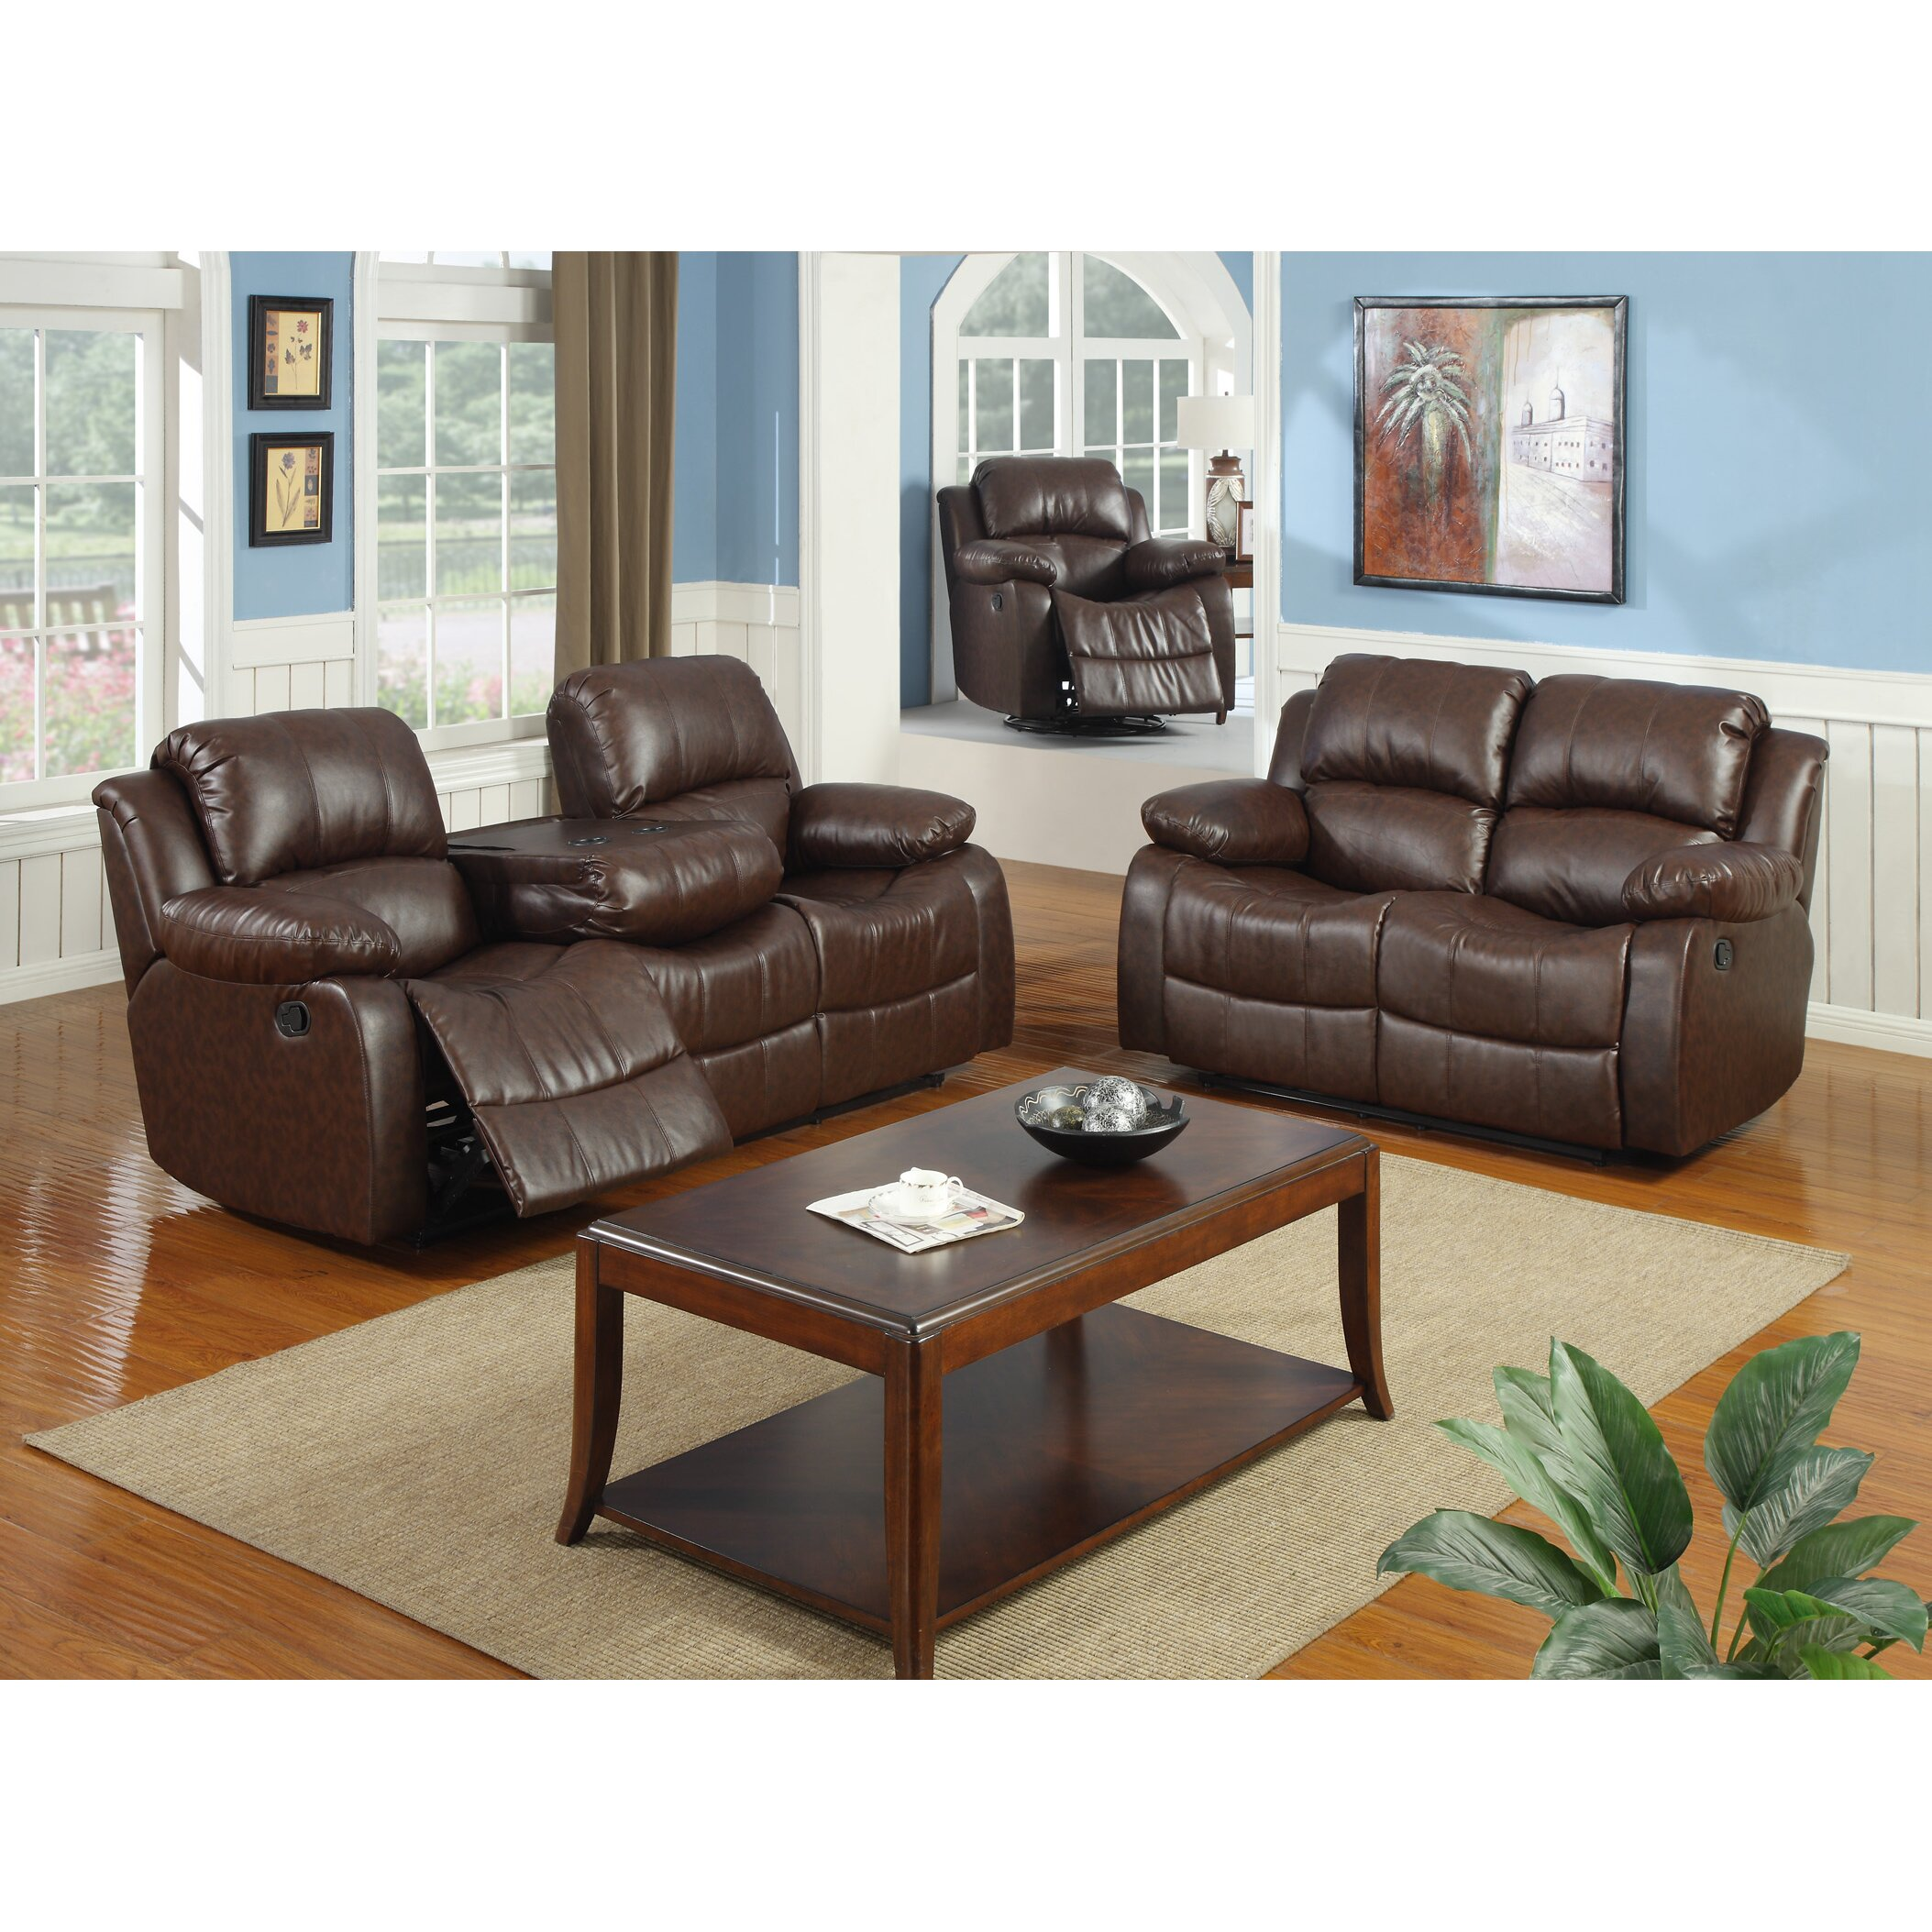 3 piece reclining living room set best quality furniture bonded leather 3 recliner 23988